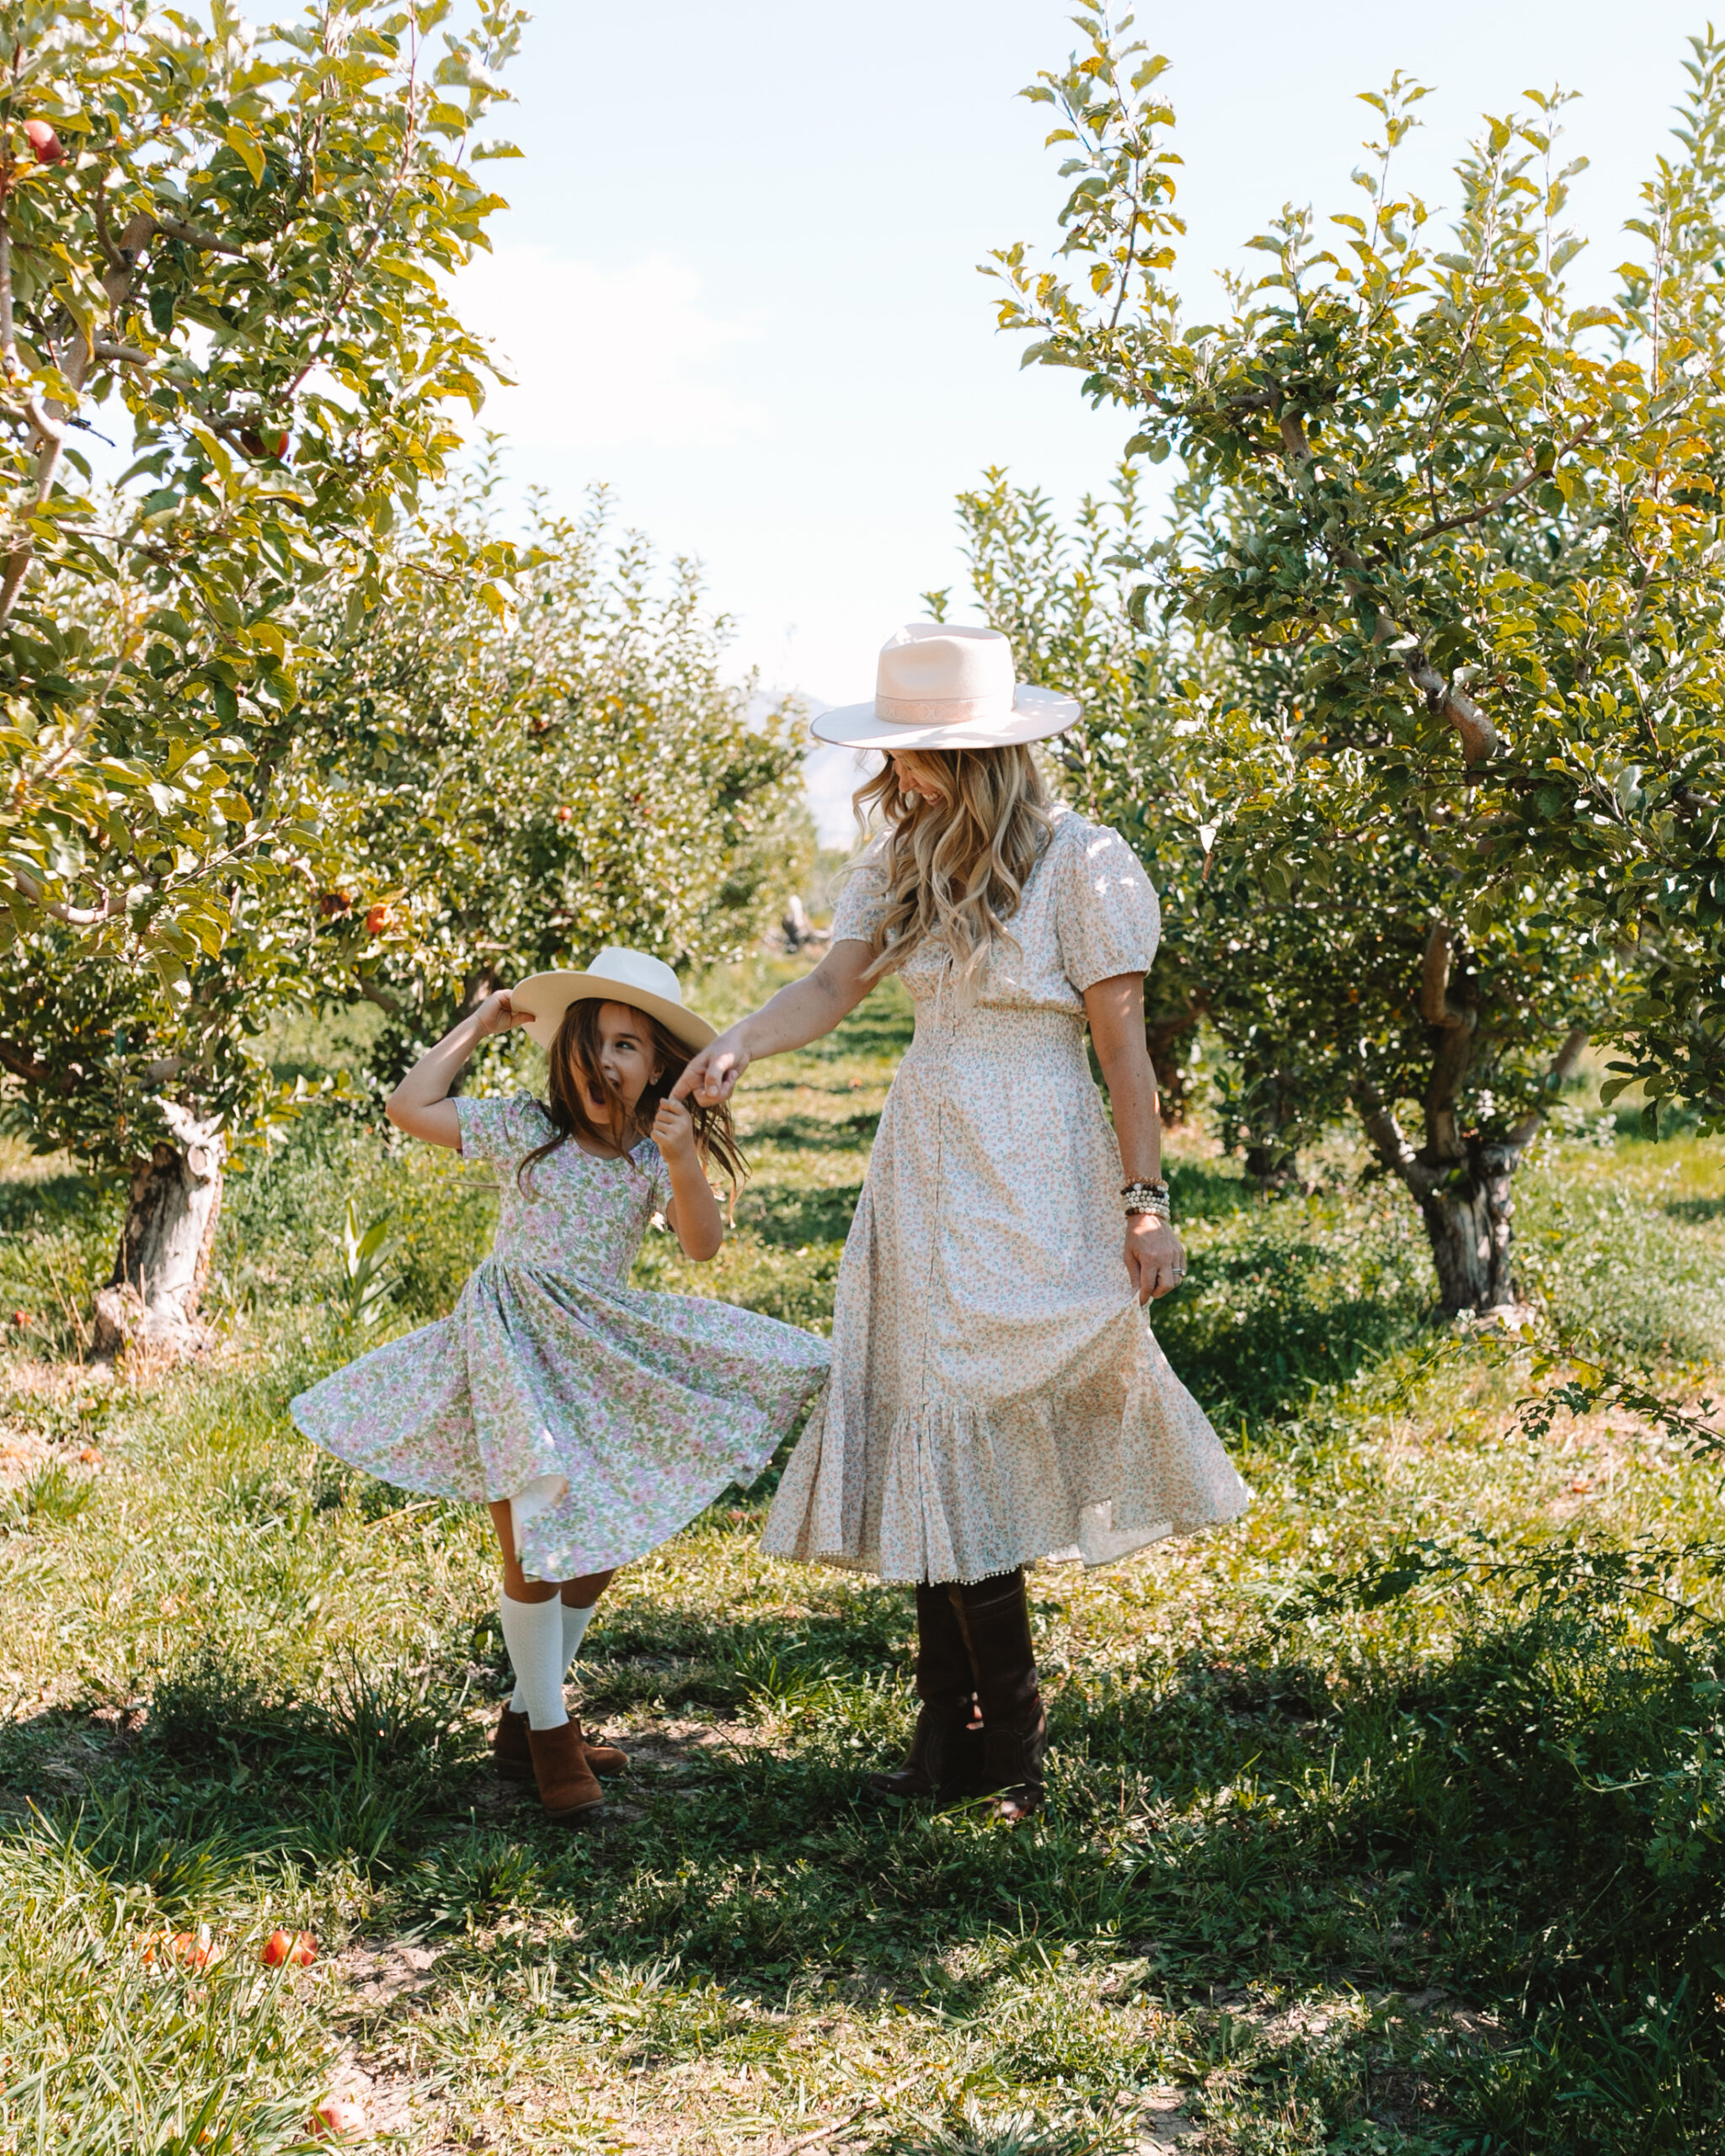 spinning our way through the apple orchard #thelovedesignedlife #theldltravels #fallfun